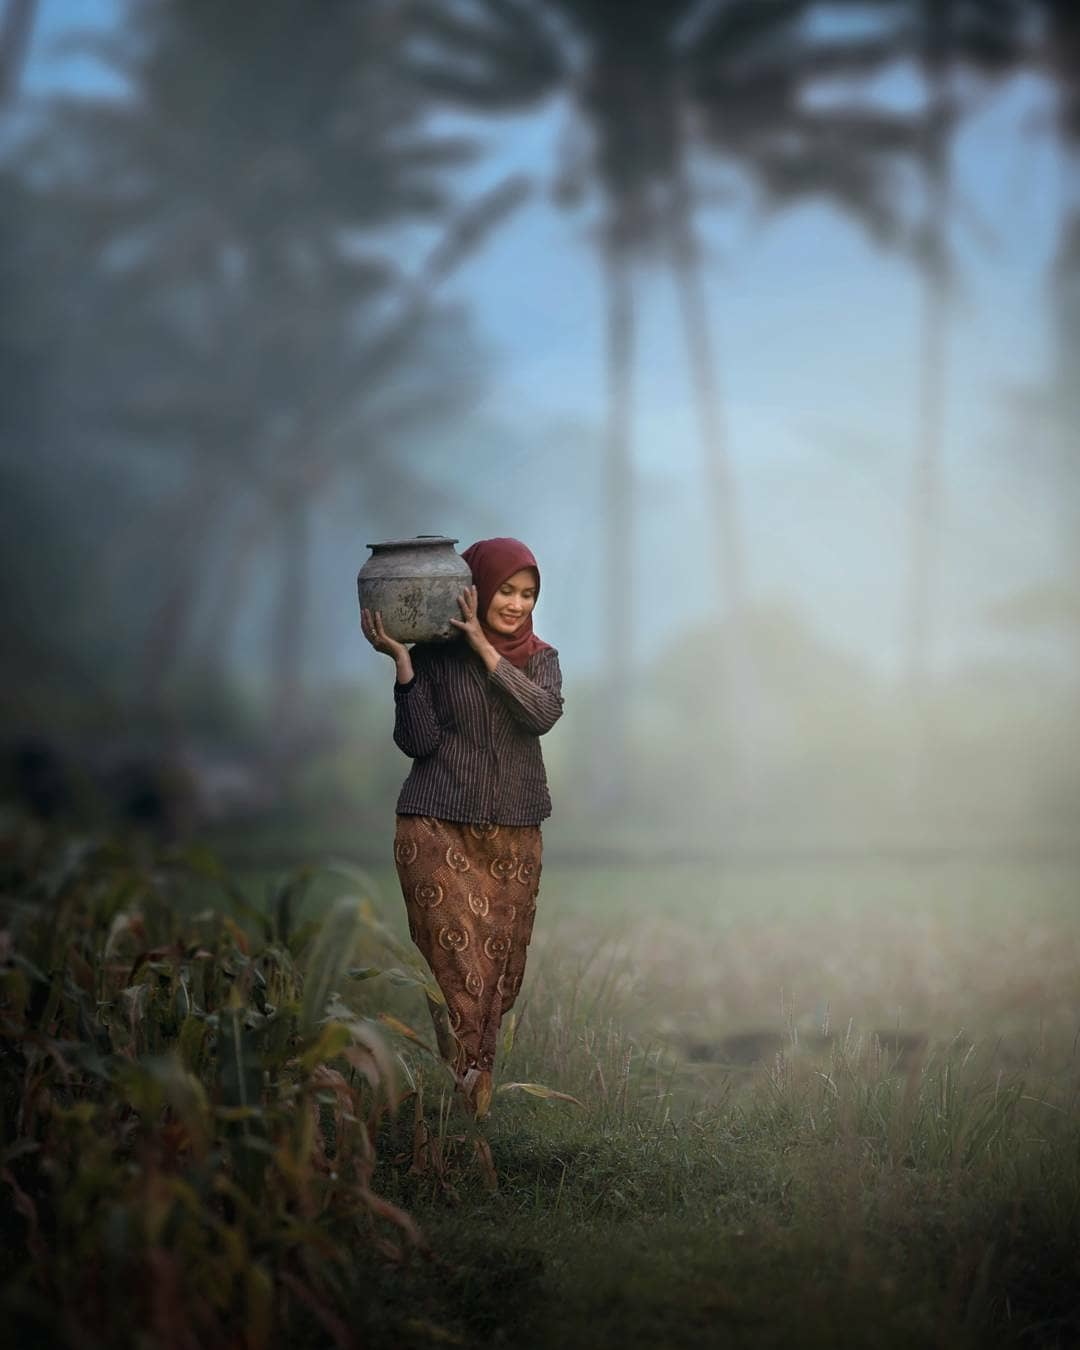 Indonesian Woman Carries Vase